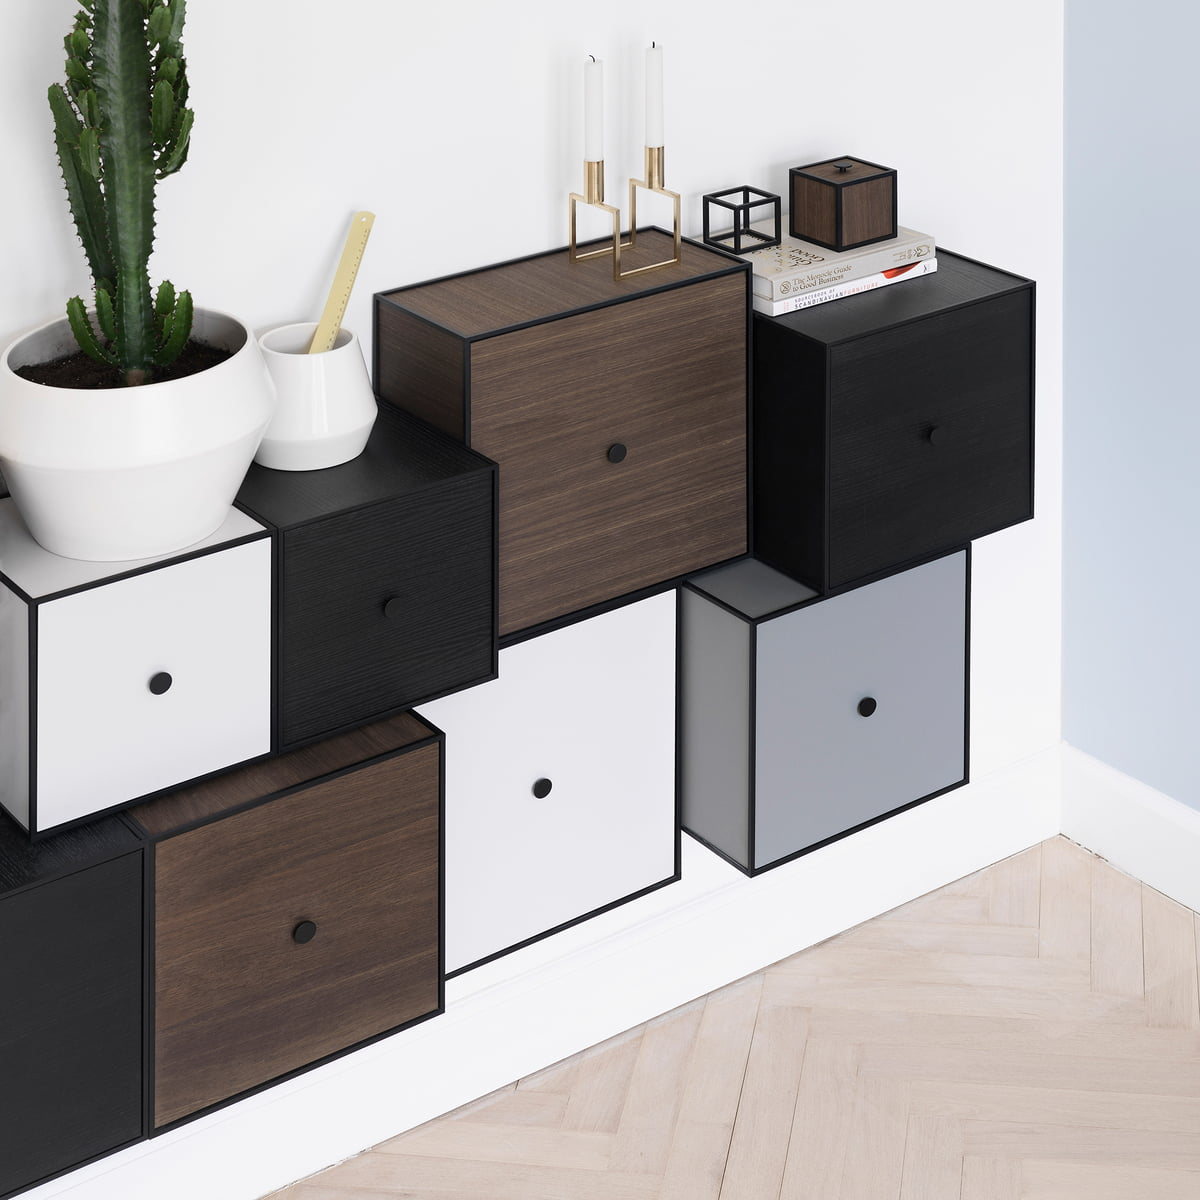 frame regalmodul 35 von by lassen connox. Black Bedroom Furniture Sets. Home Design Ideas